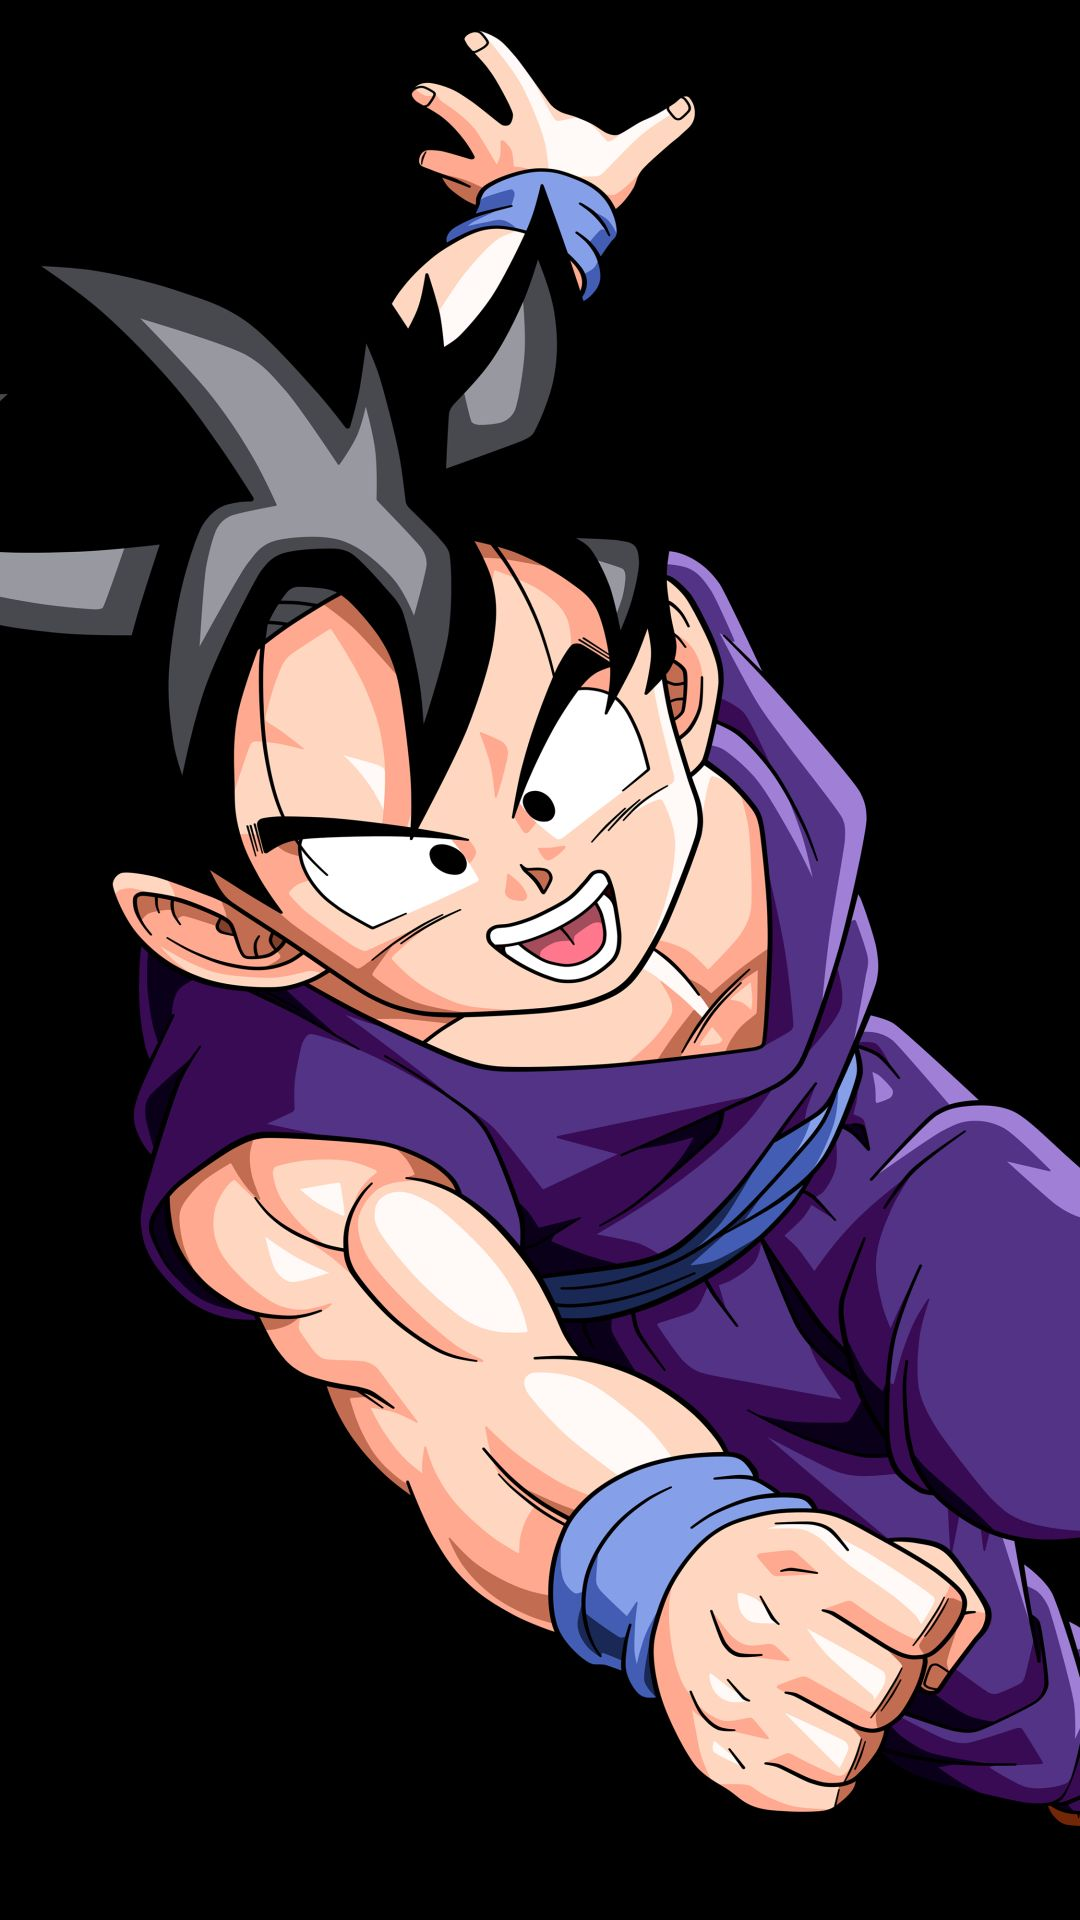 Gohan screensaver wallpaper